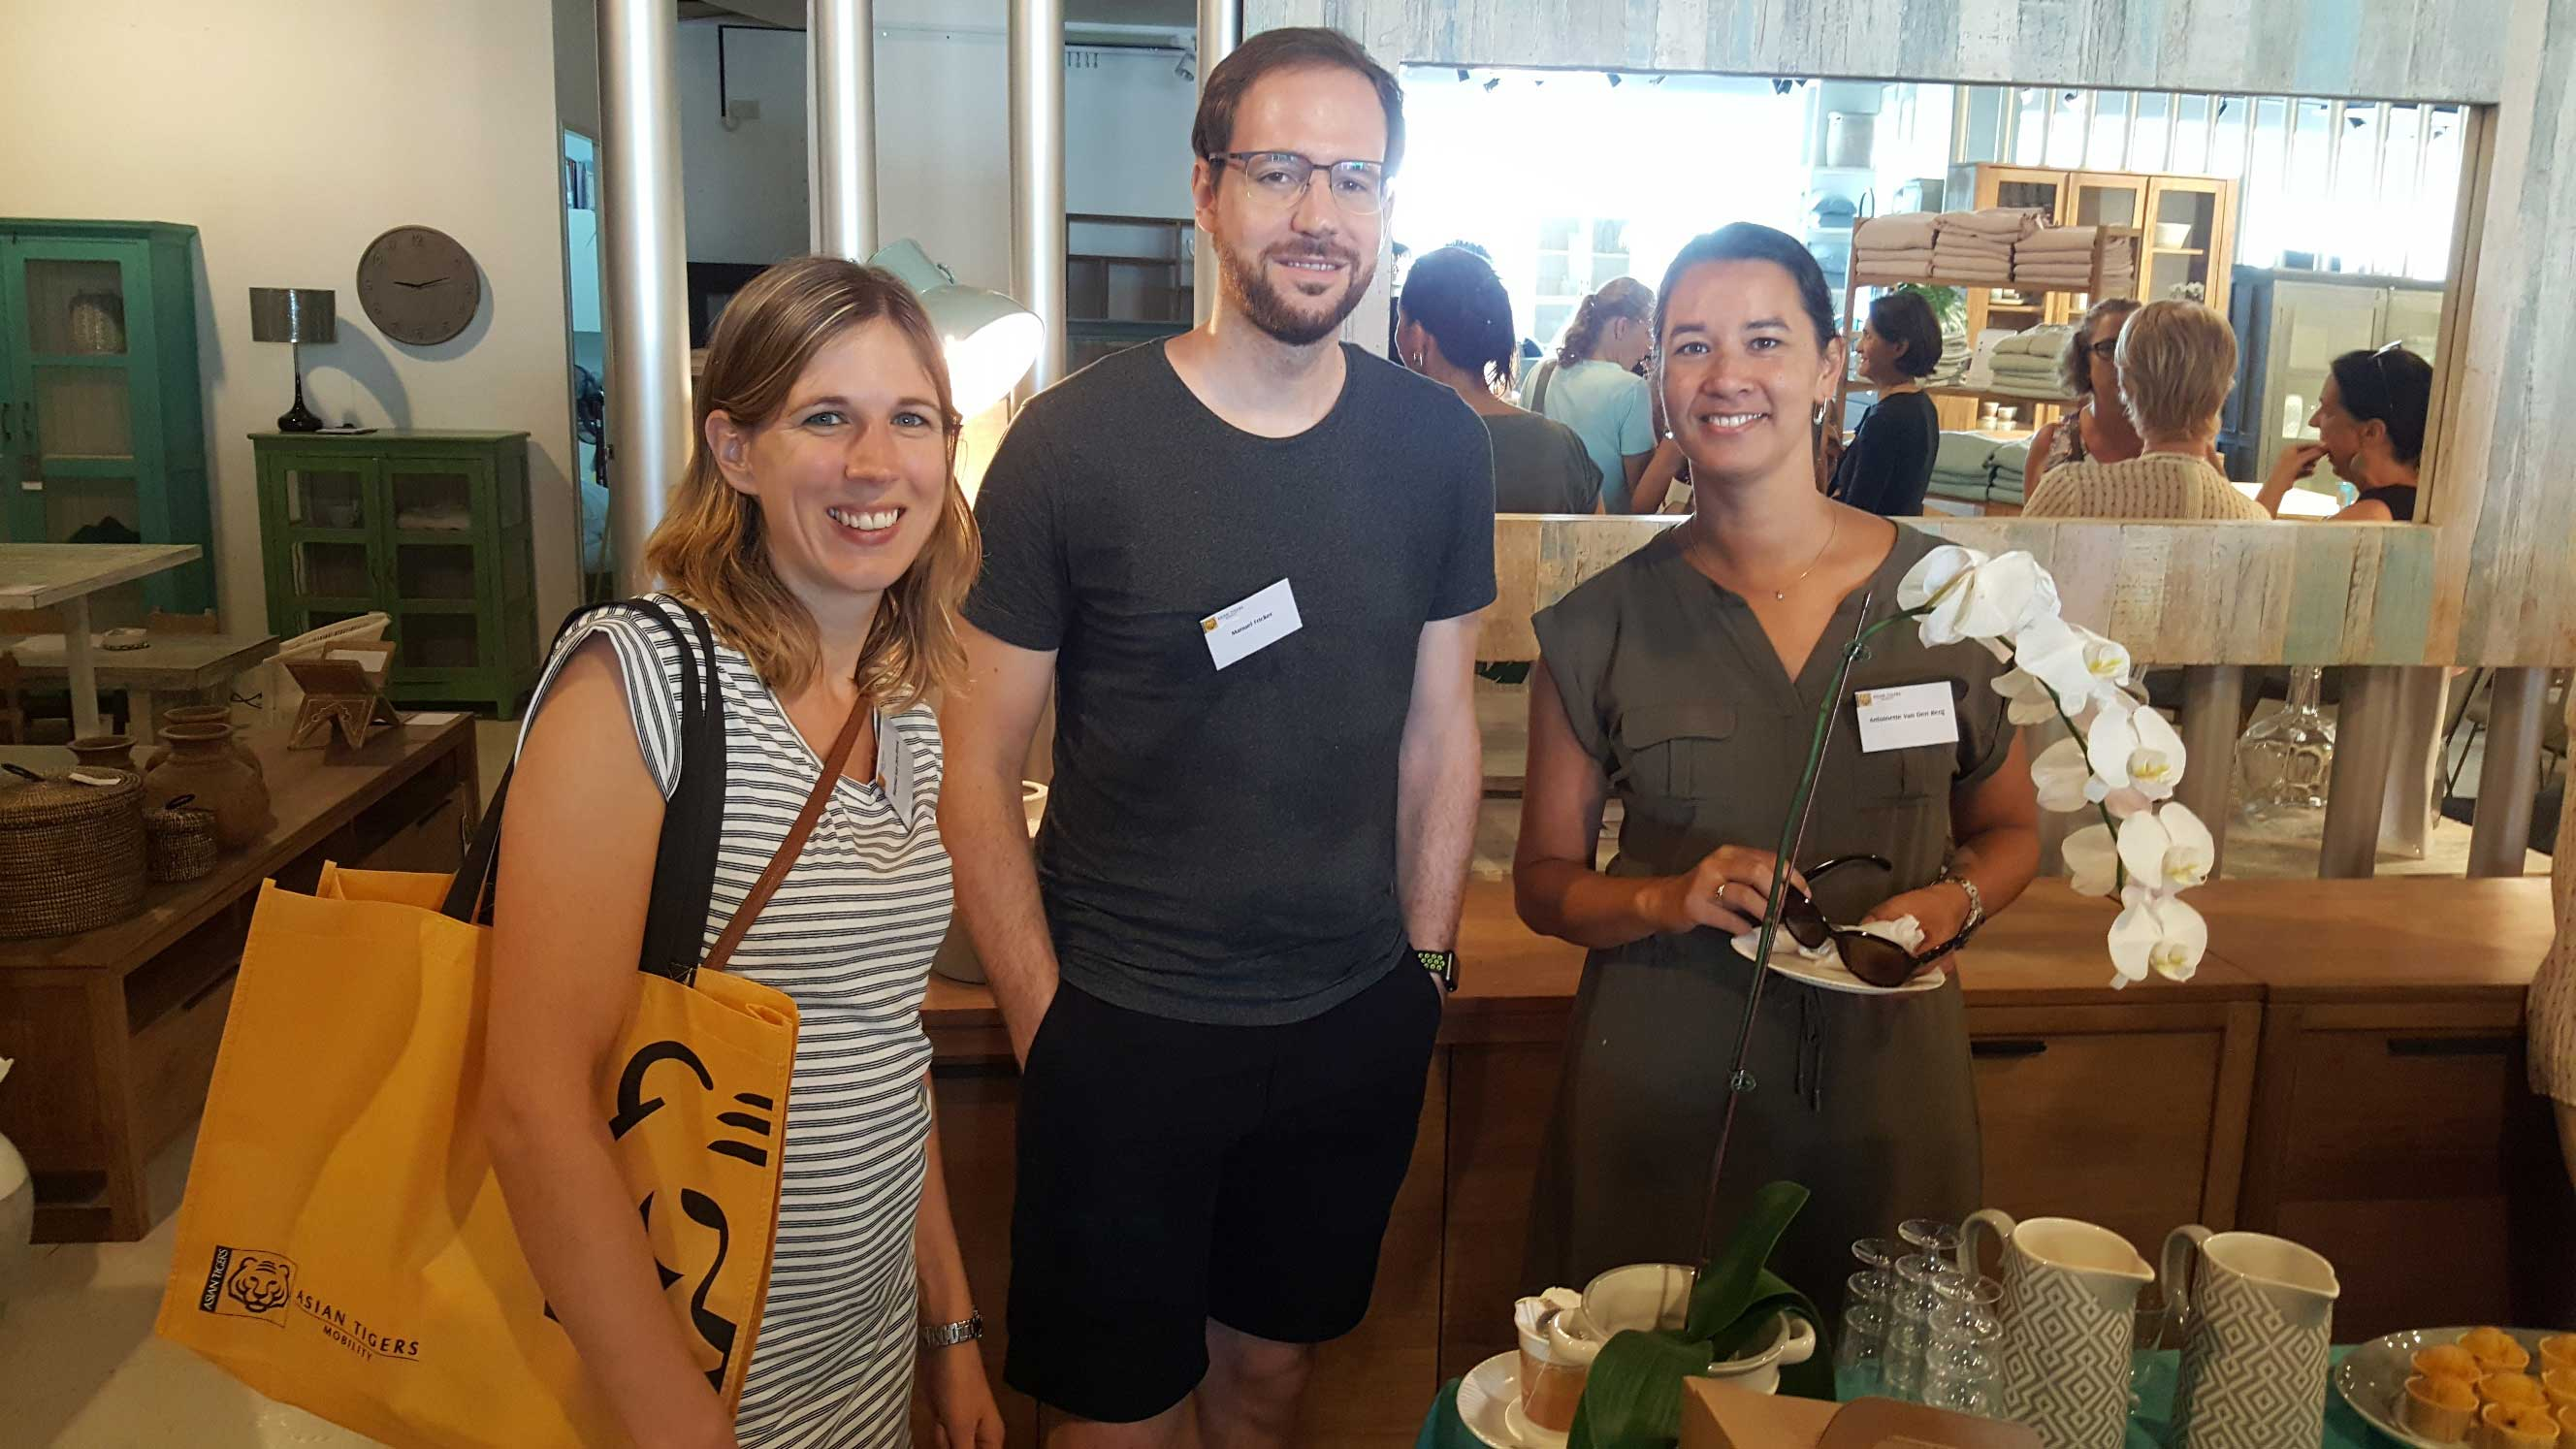 'Get-to-know Singapore' coffee morning